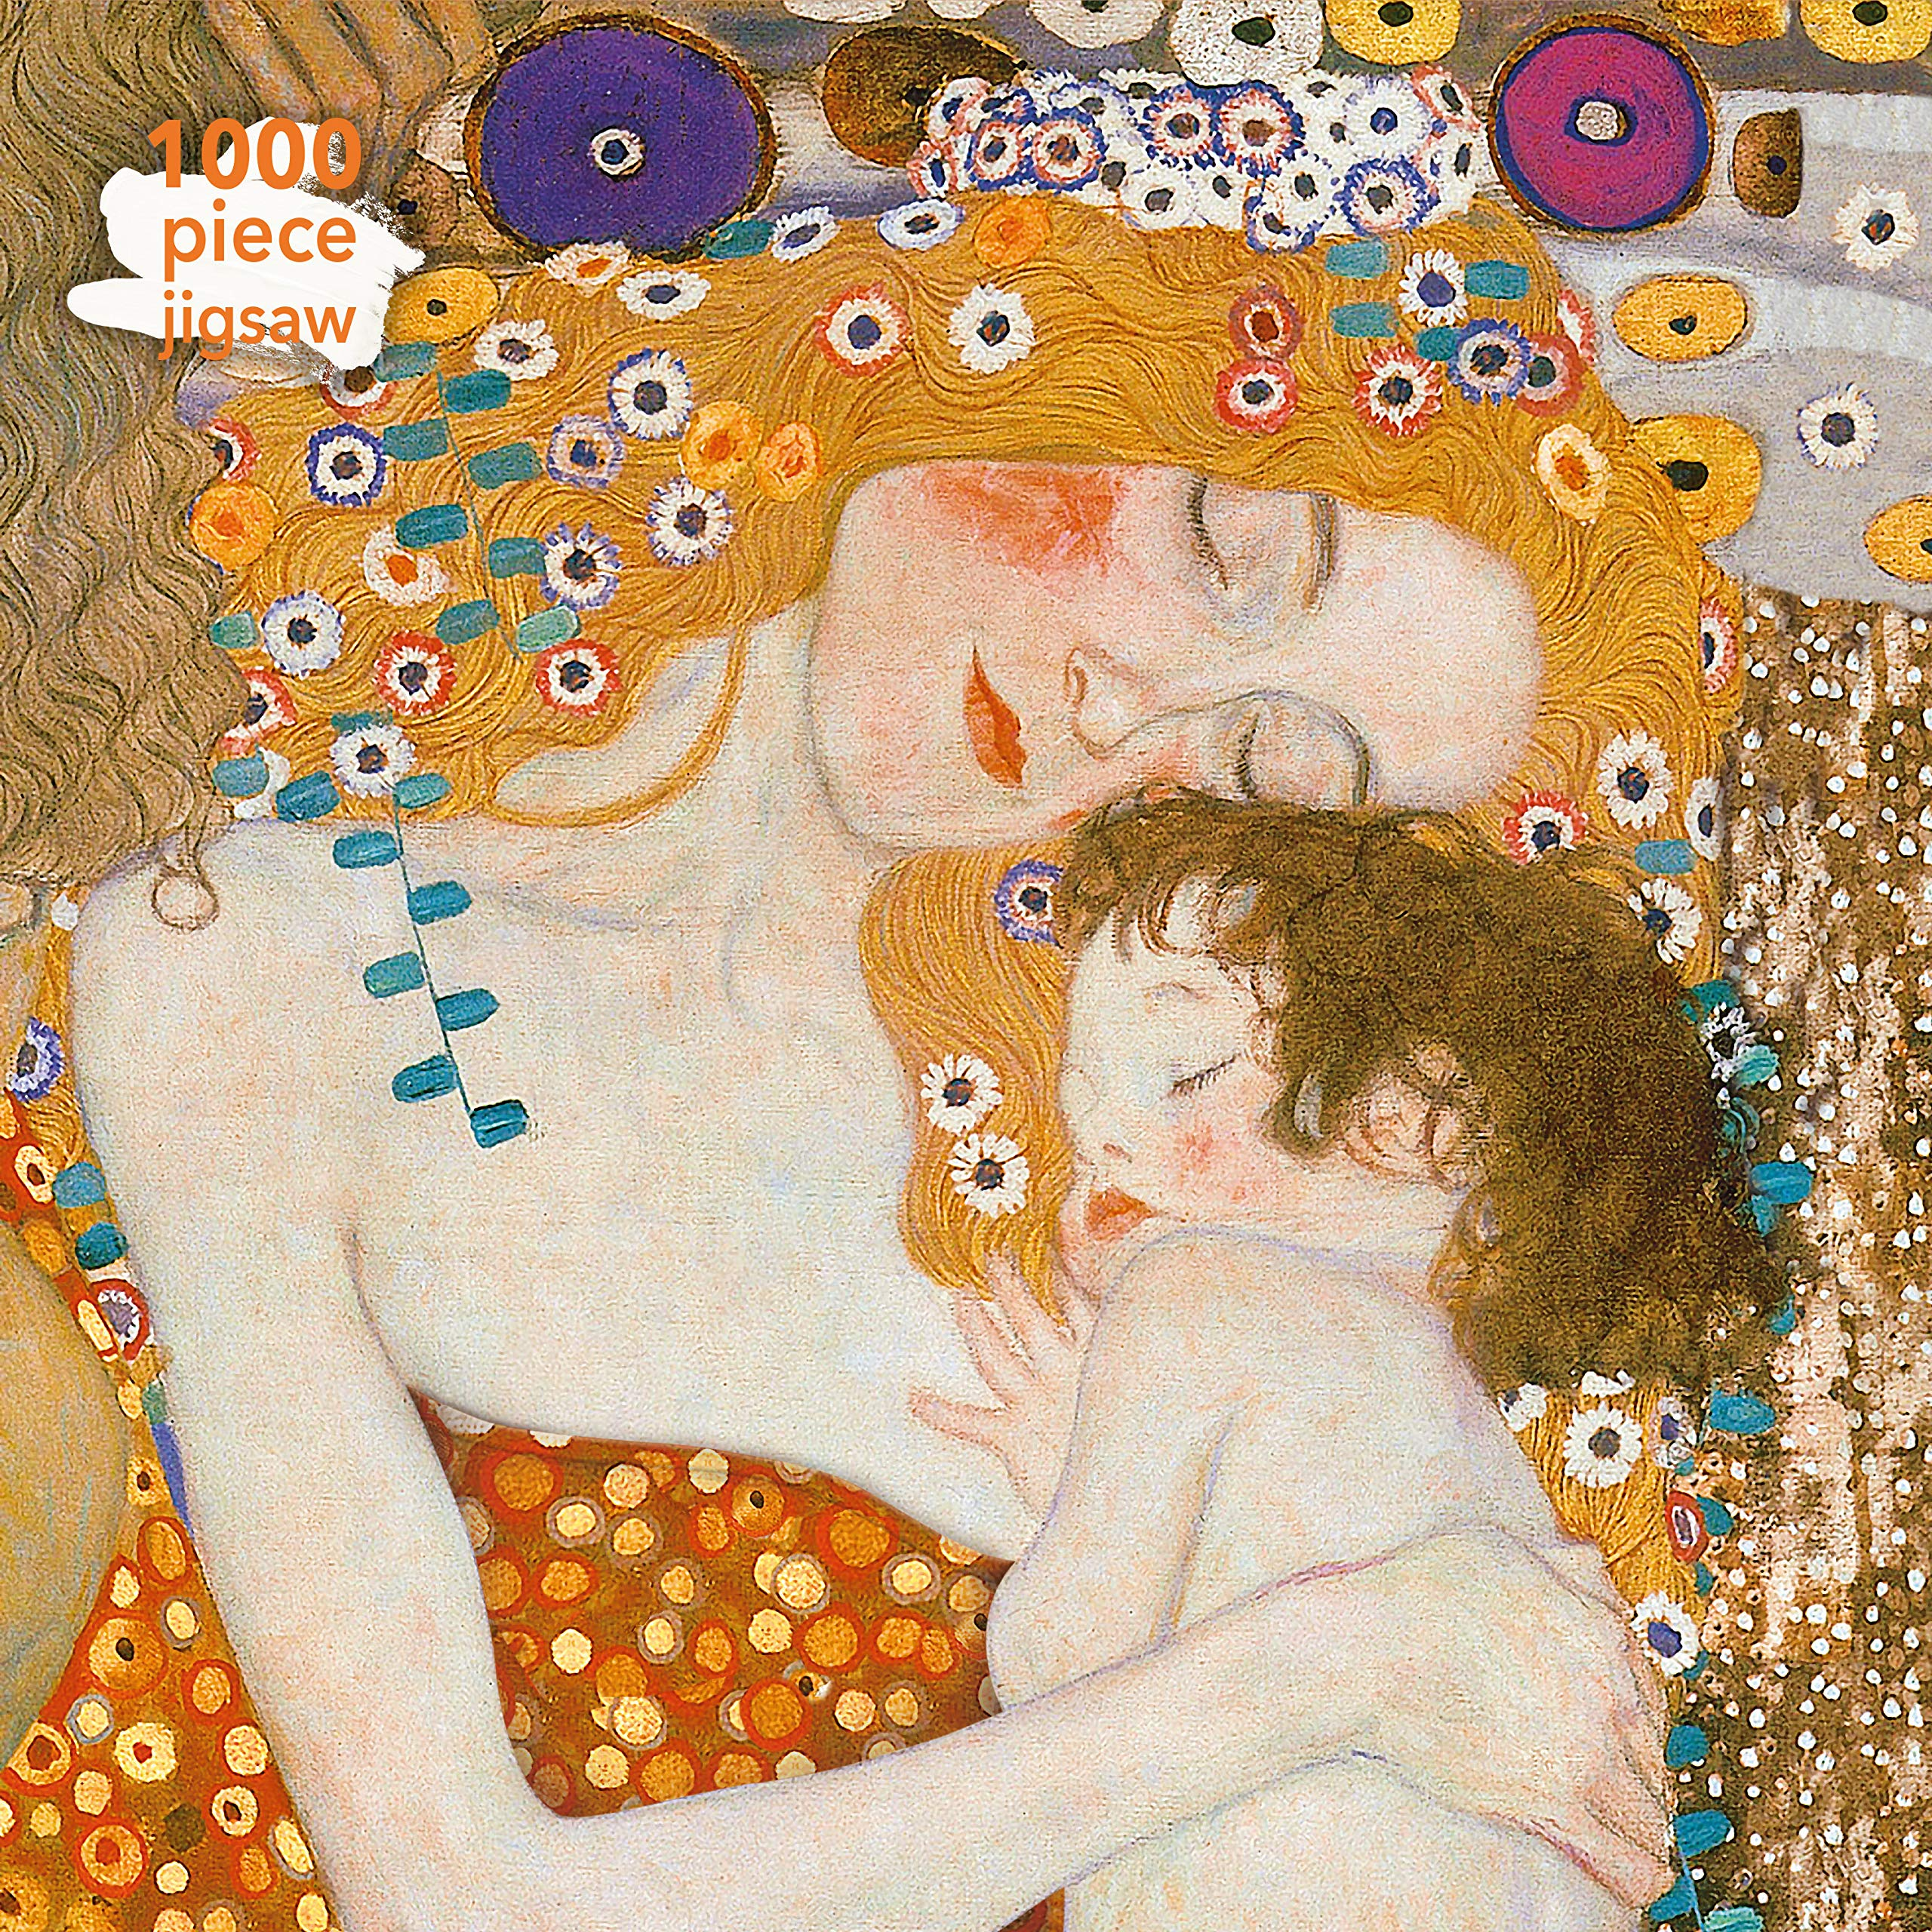 adult jigsaw gustav klimt three ages of woman 1000 piece jigsaw puzzle 1000 piece jigsaws